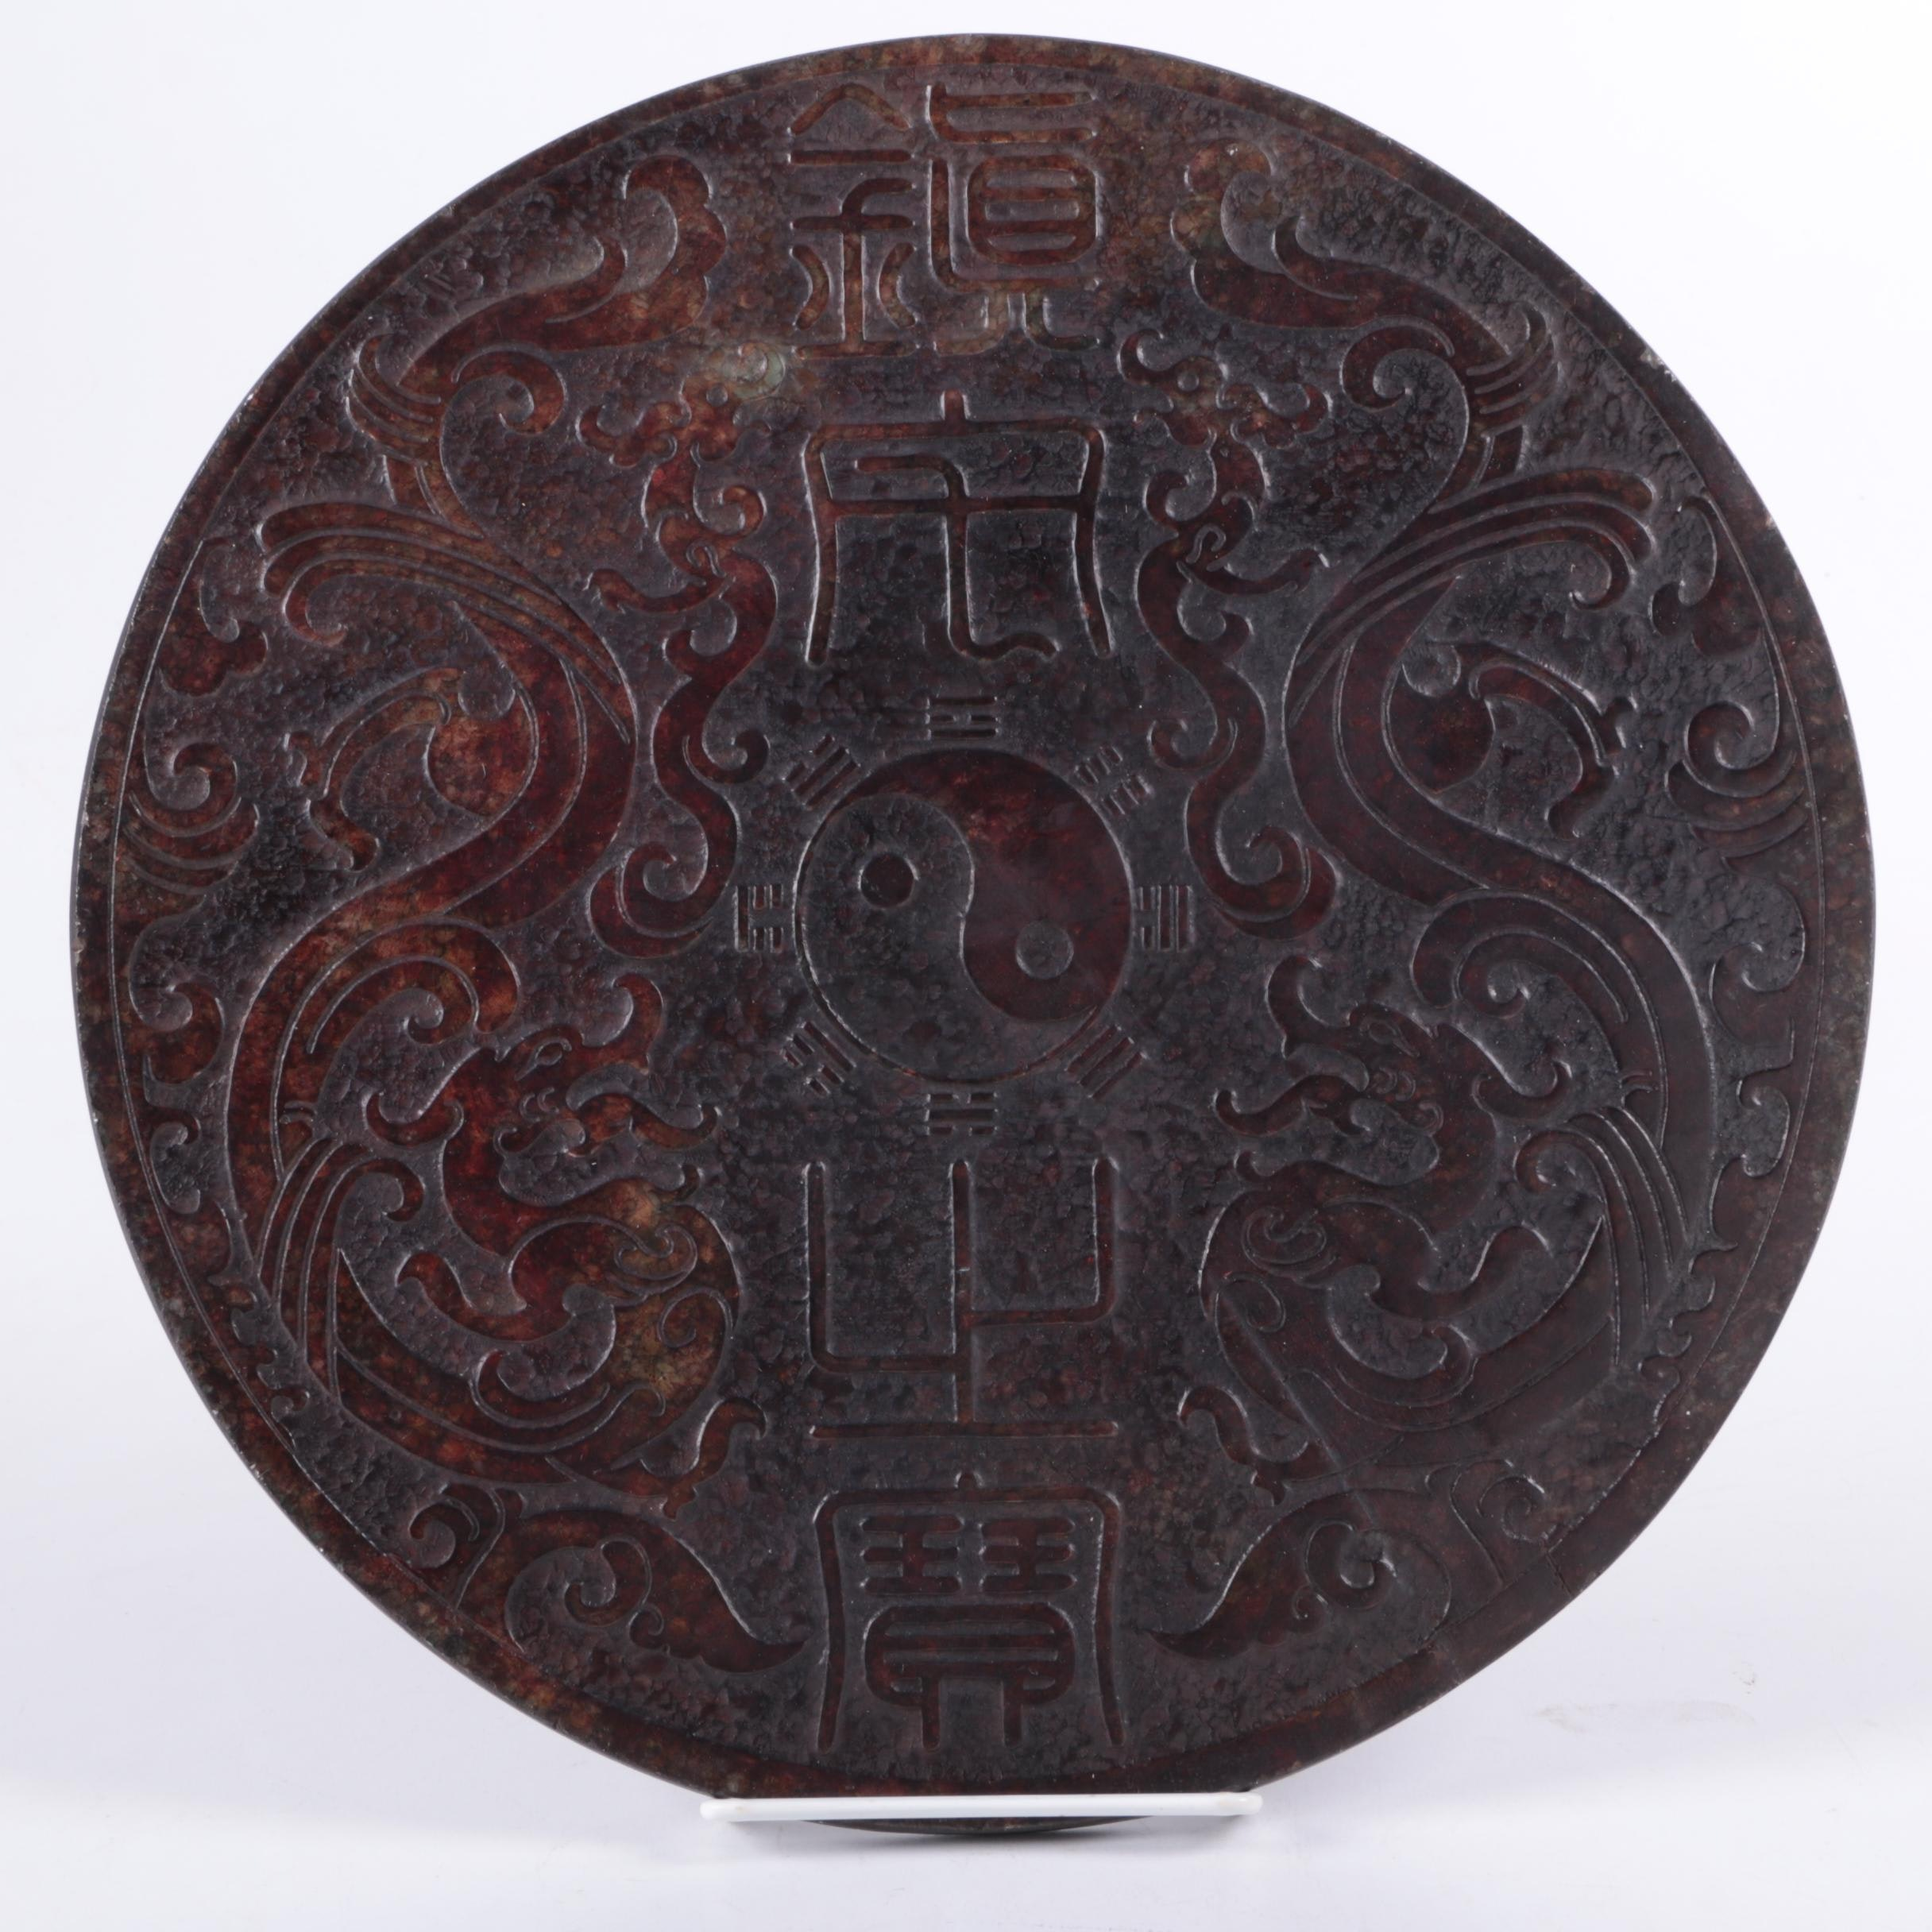 Carved Serpentine Disc Featuring Chinese Symbols